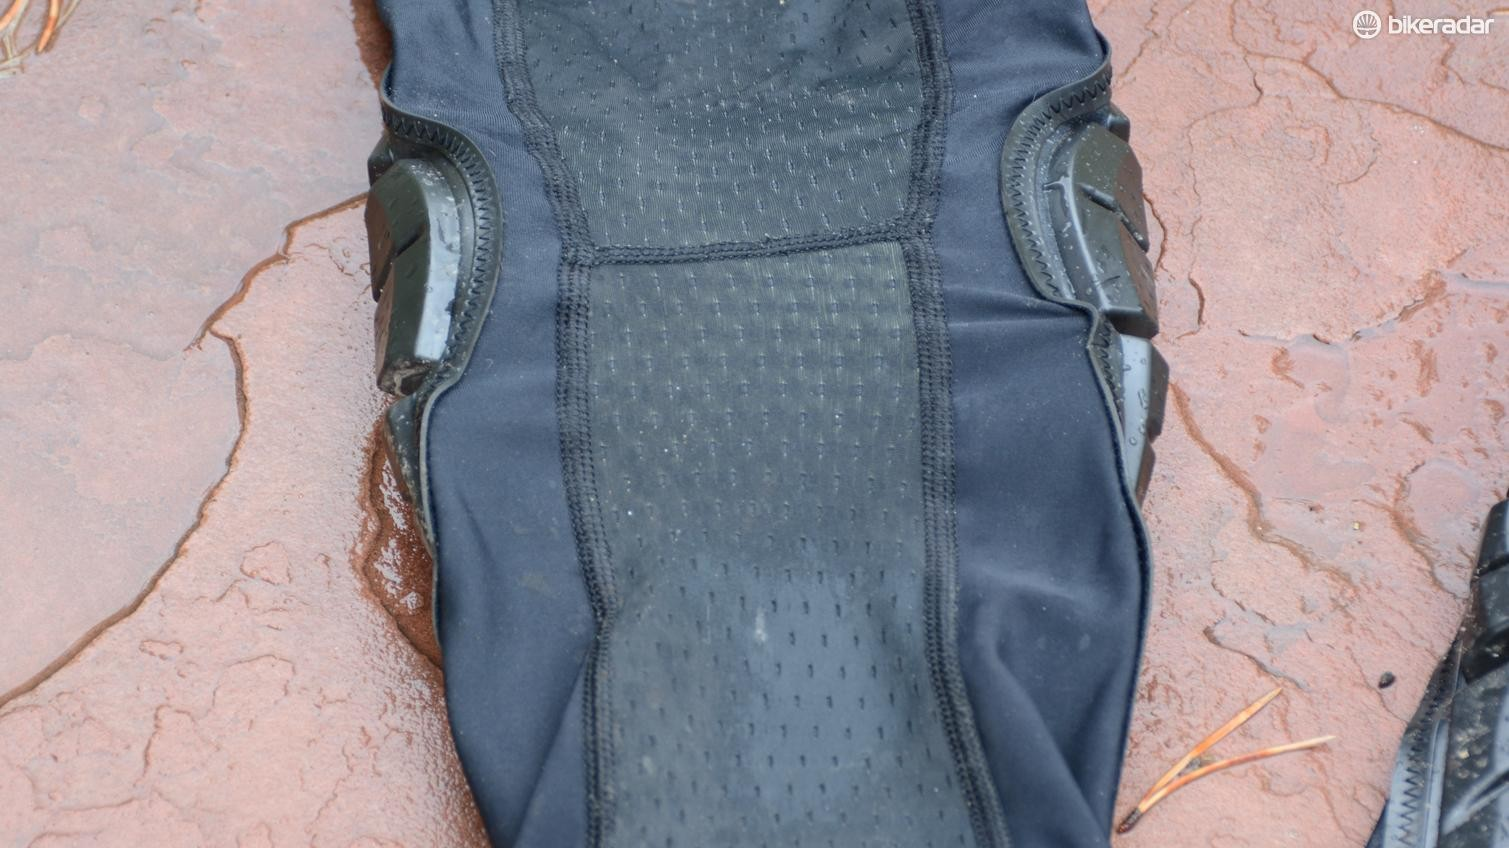 Mesh on the back prevents bunching of the material while pedaling and provides some ventilation